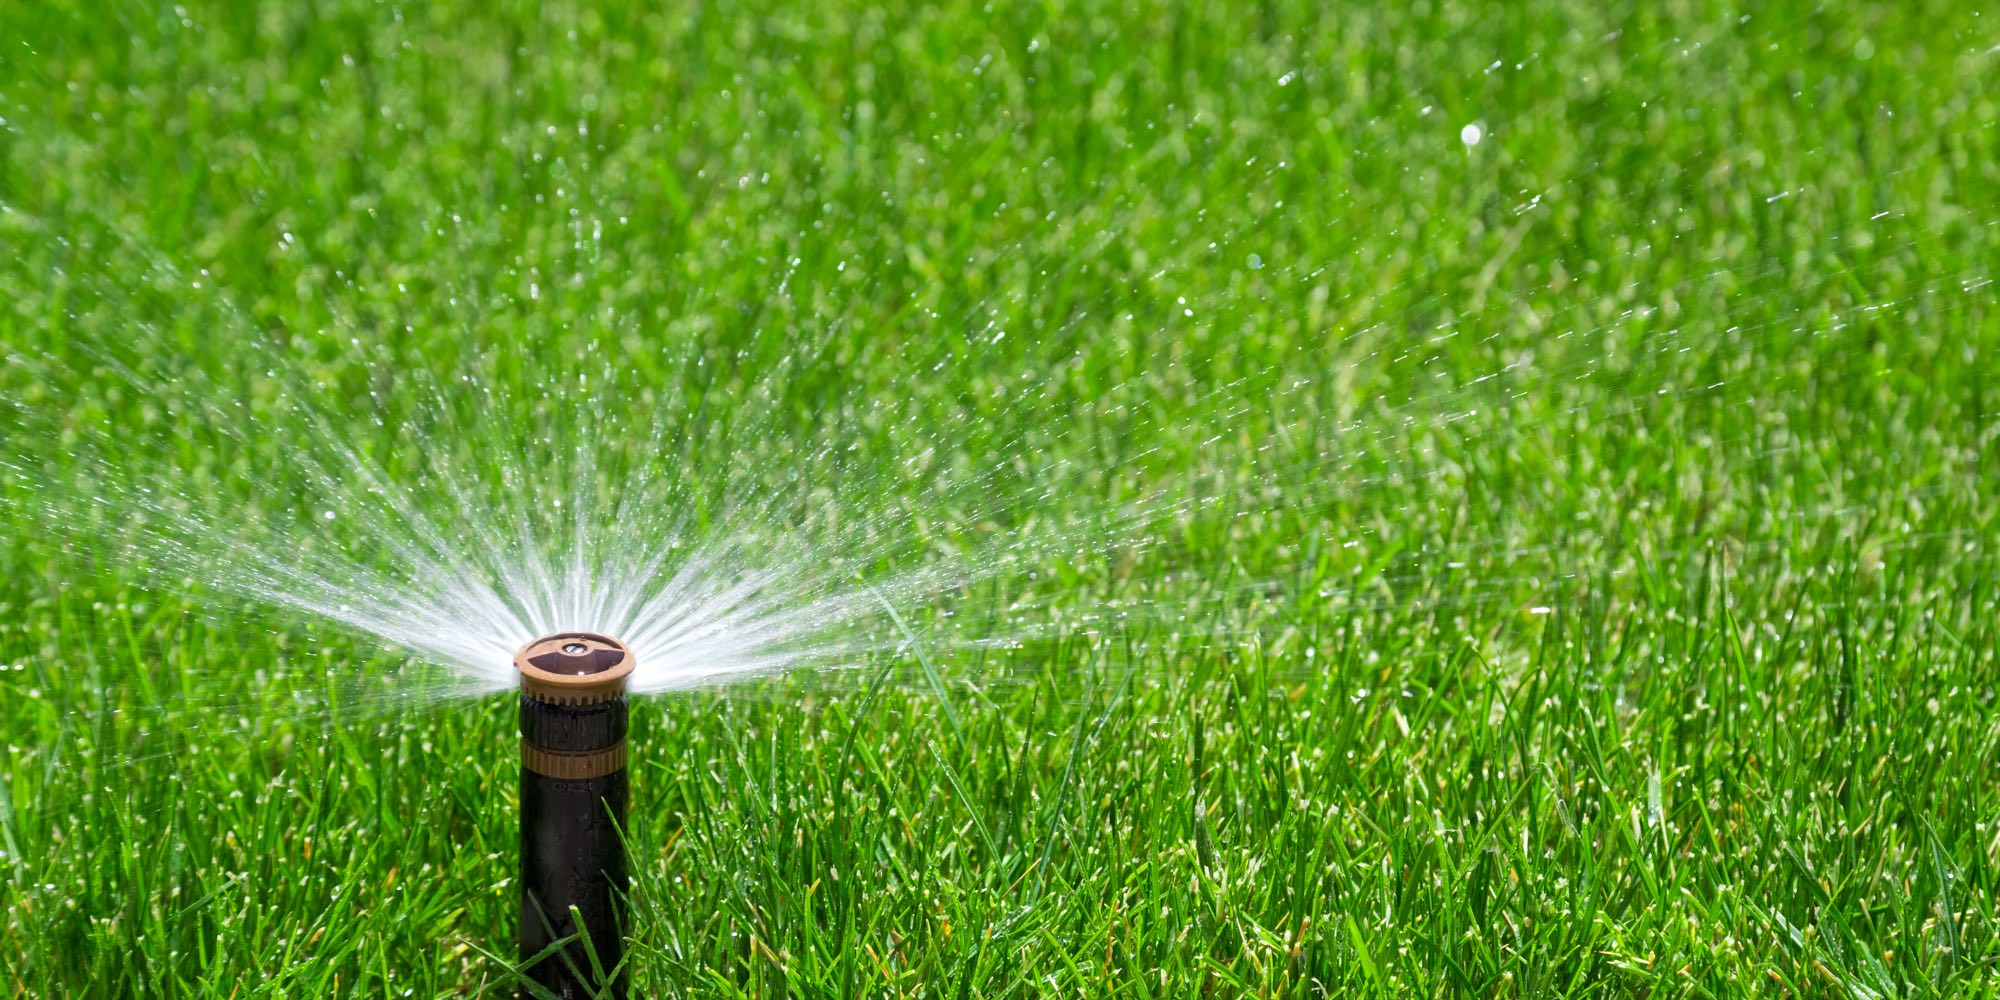 water sprinkler lawn green grass